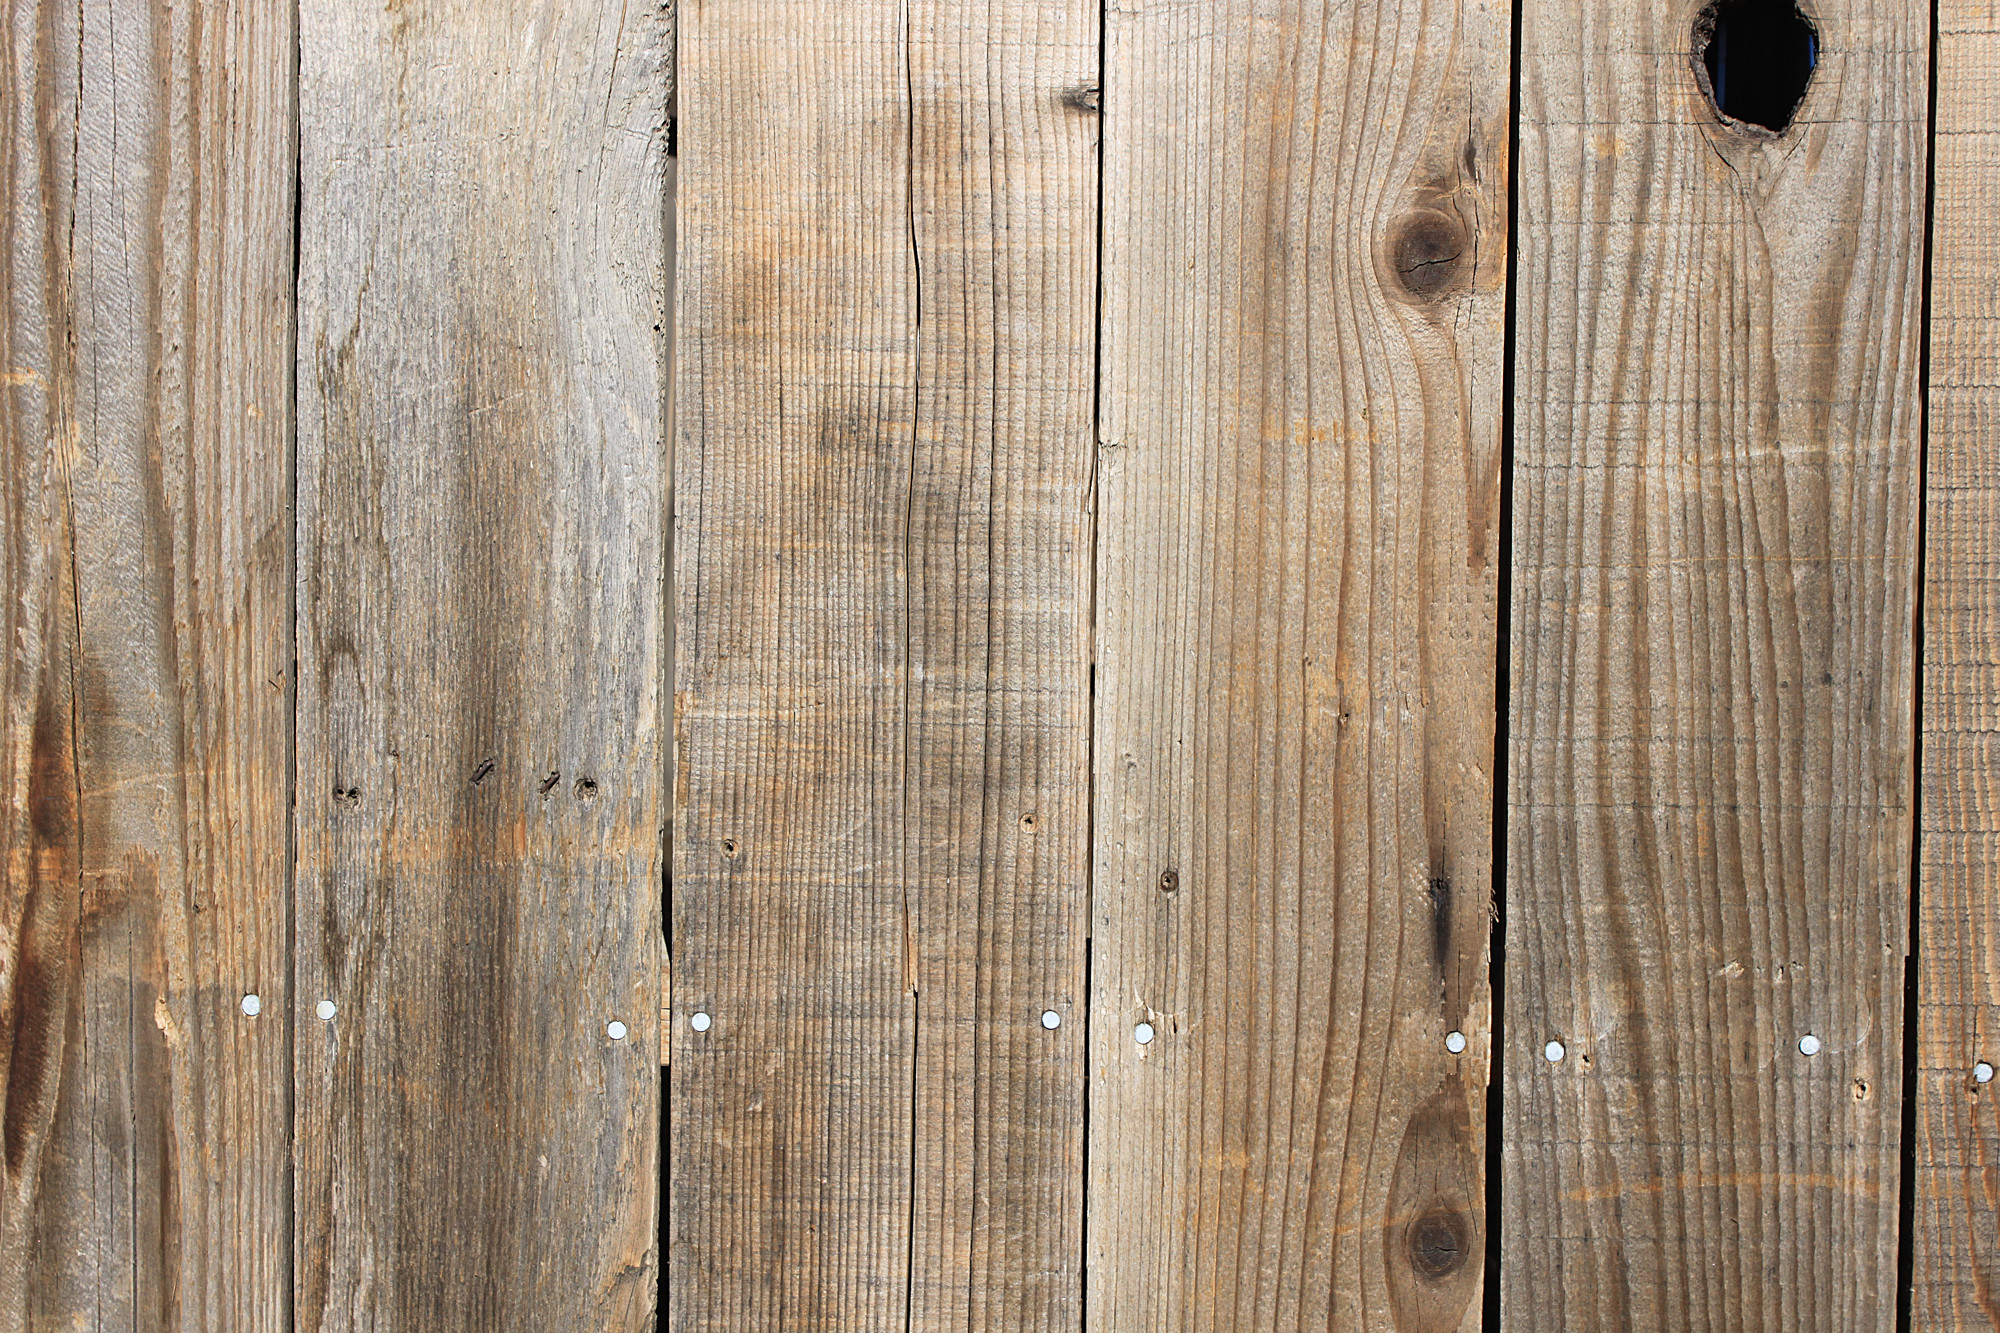 2000x1333 ... Rustic Wood Background And Totally FREE High Res Rustic Wooden Textures  And Graphic ...